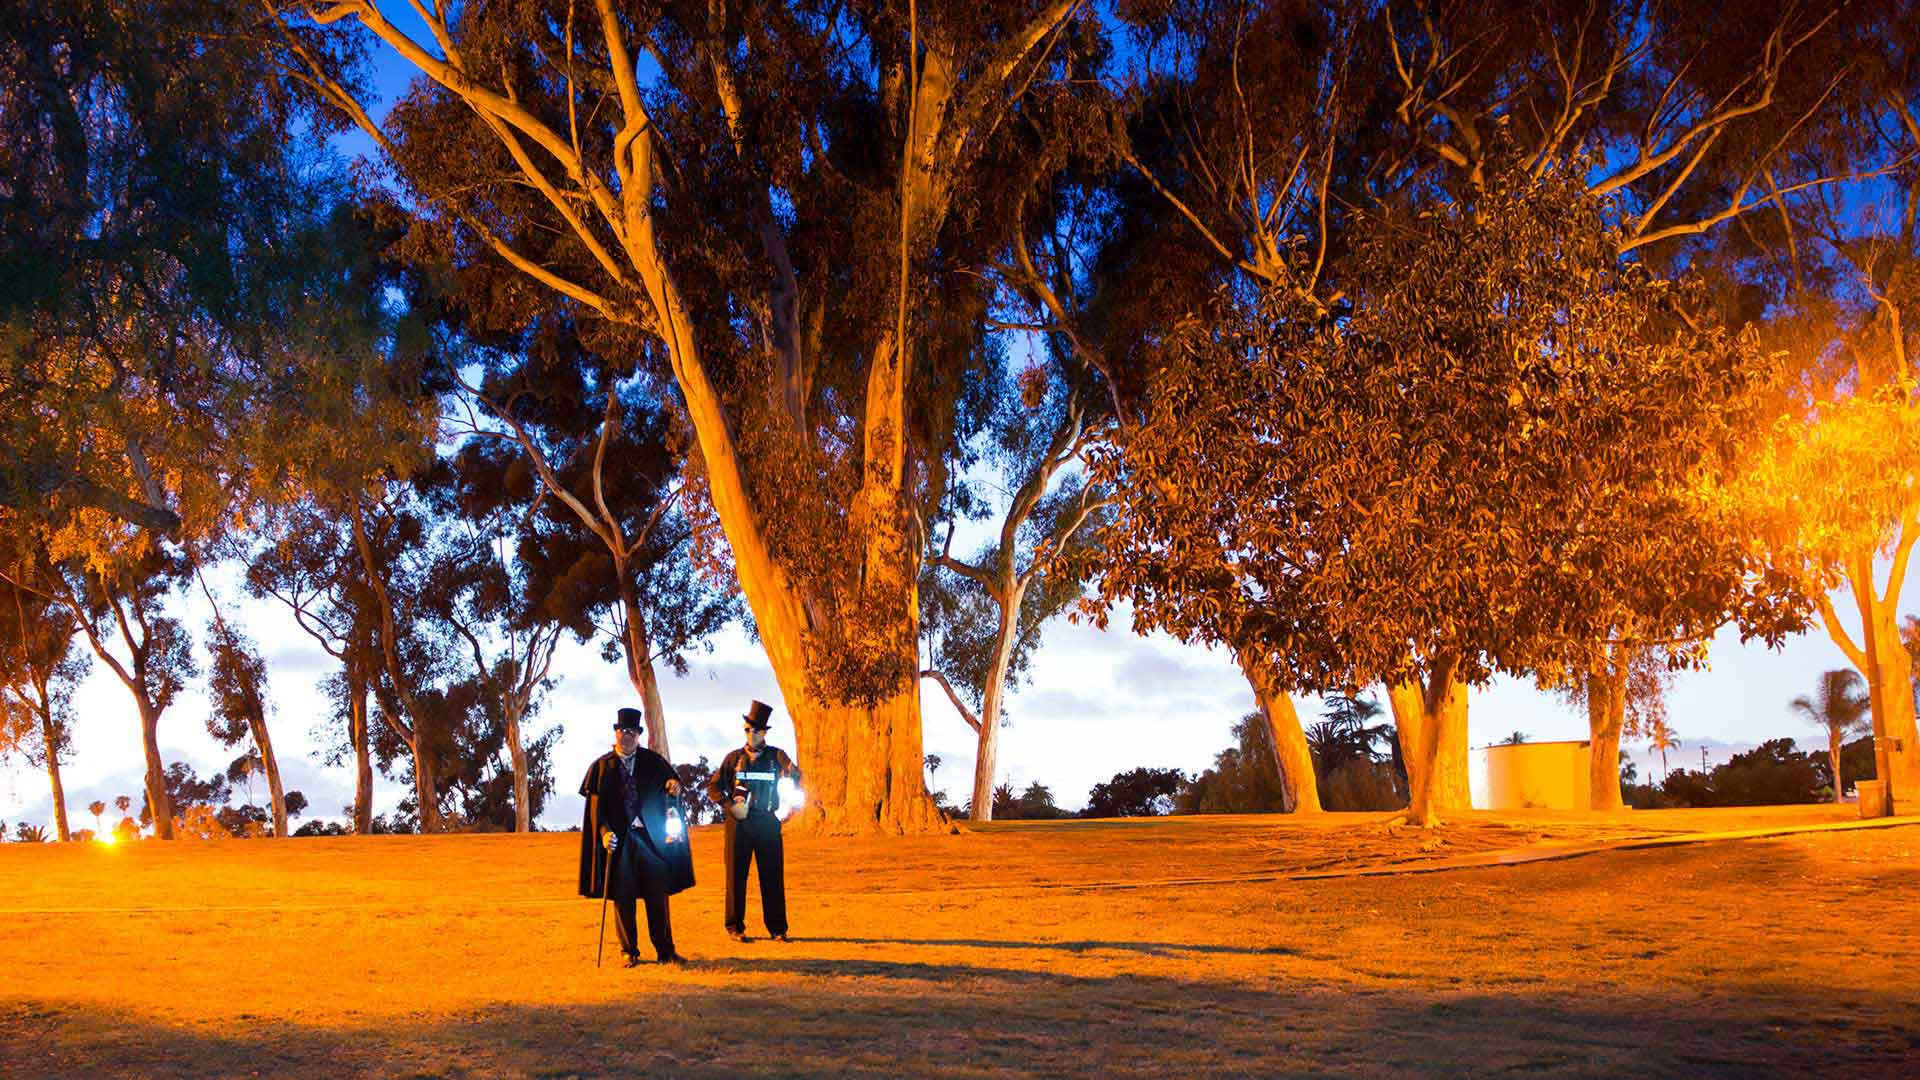 san diego ghost tour guides at night in park